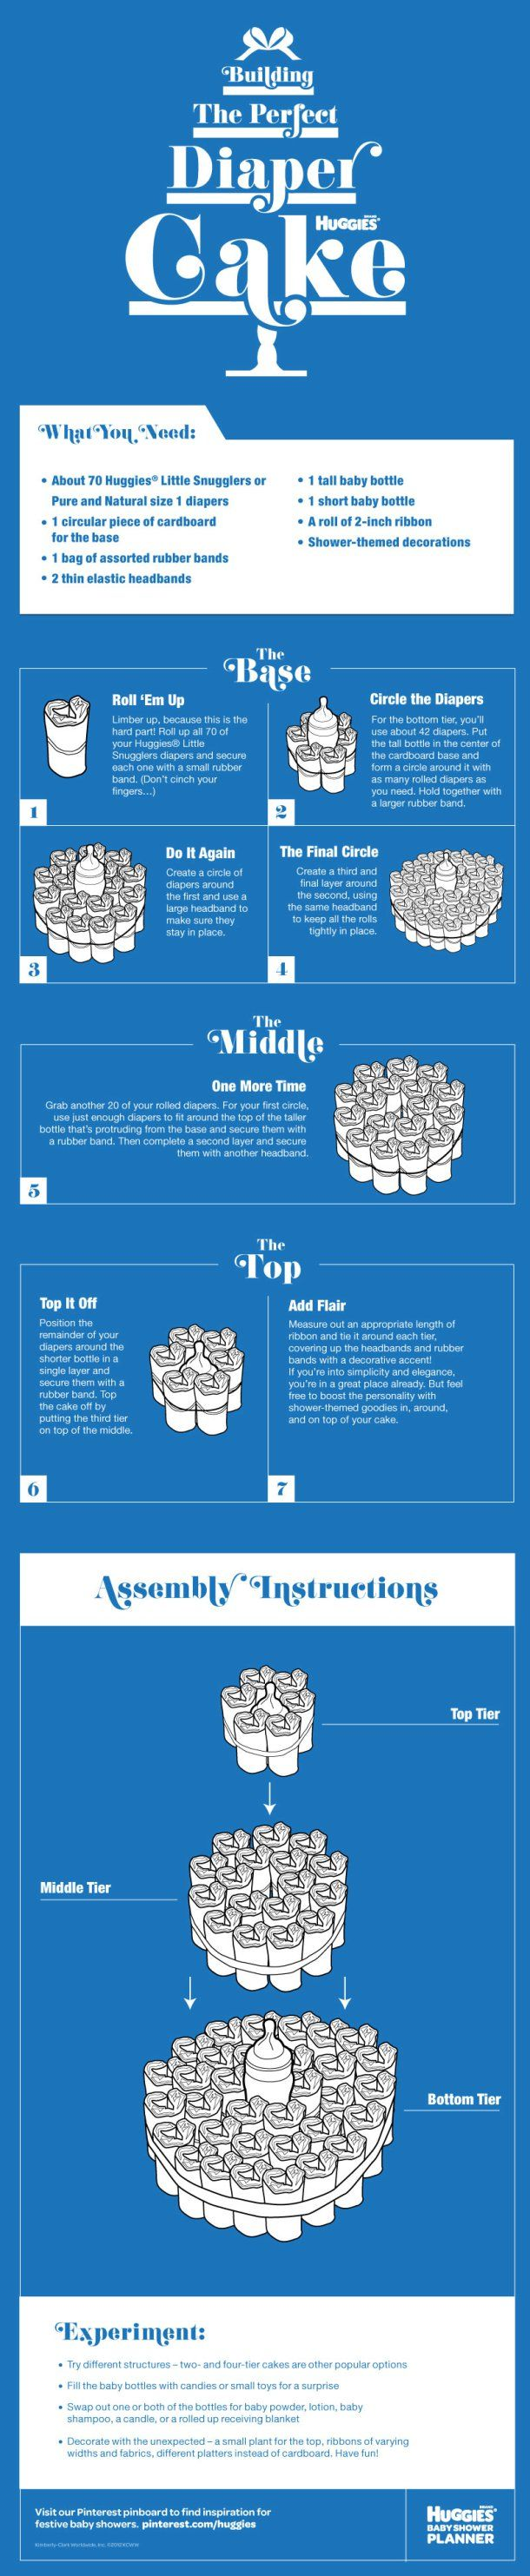 Building The Perfect Diaper Cake[INFOGRAPHIC]